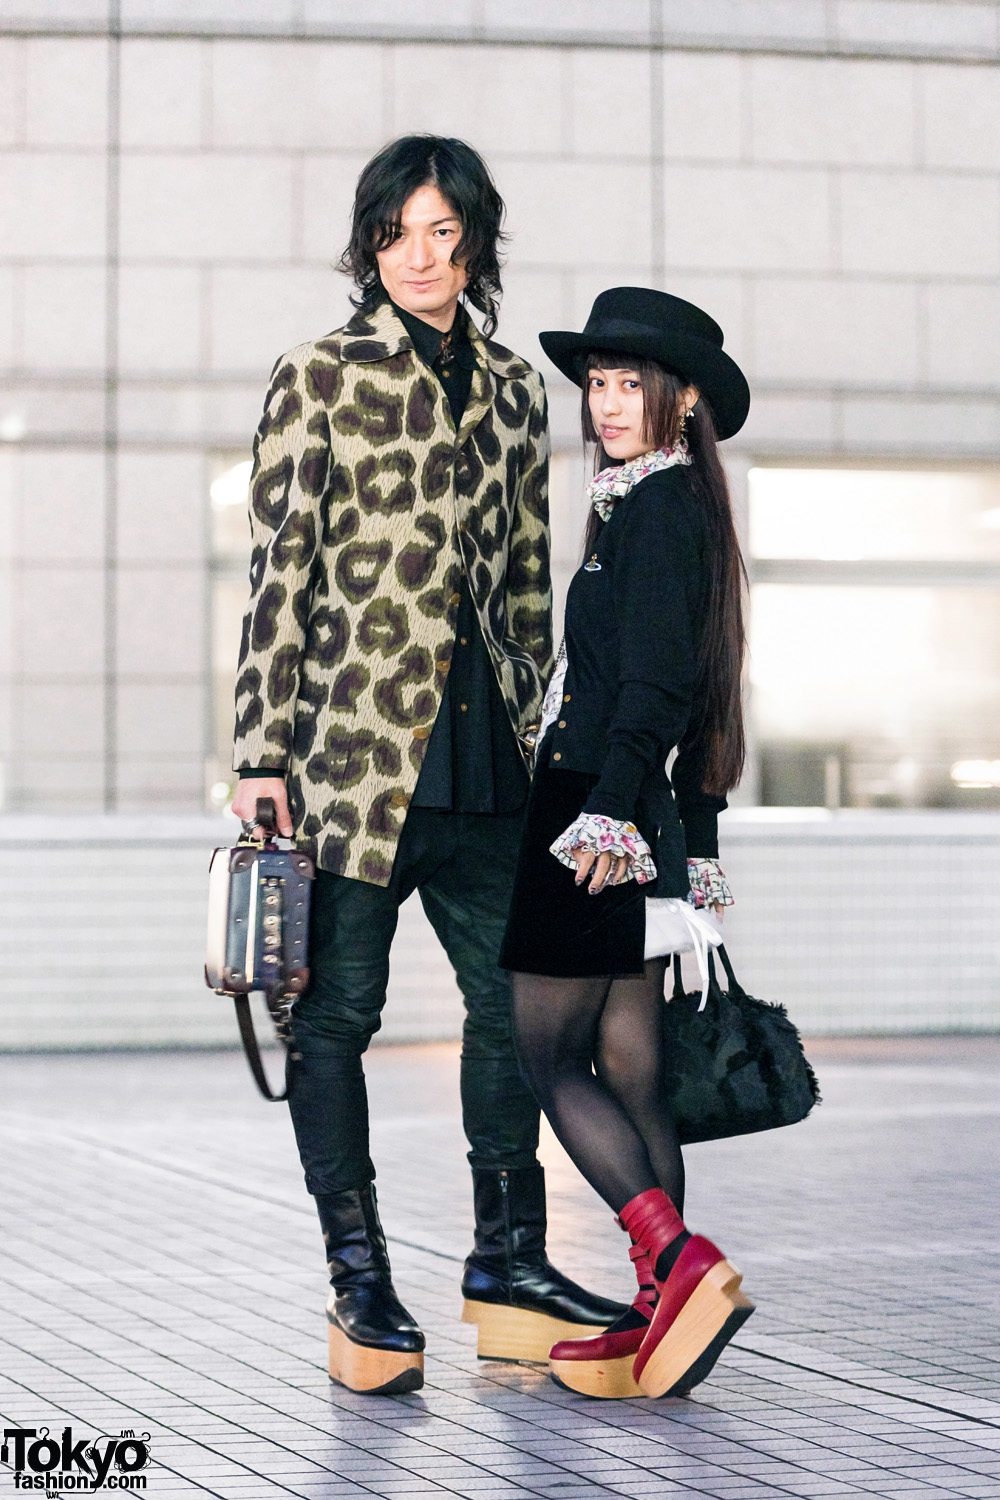 Vivienne Westwood Tokyo Street Fashion w/ Wide Brim Hat, Leopard Print Coat, Cardigan, Ruffle Blouse, Leather Briefcase & Rocking Horse Shoes